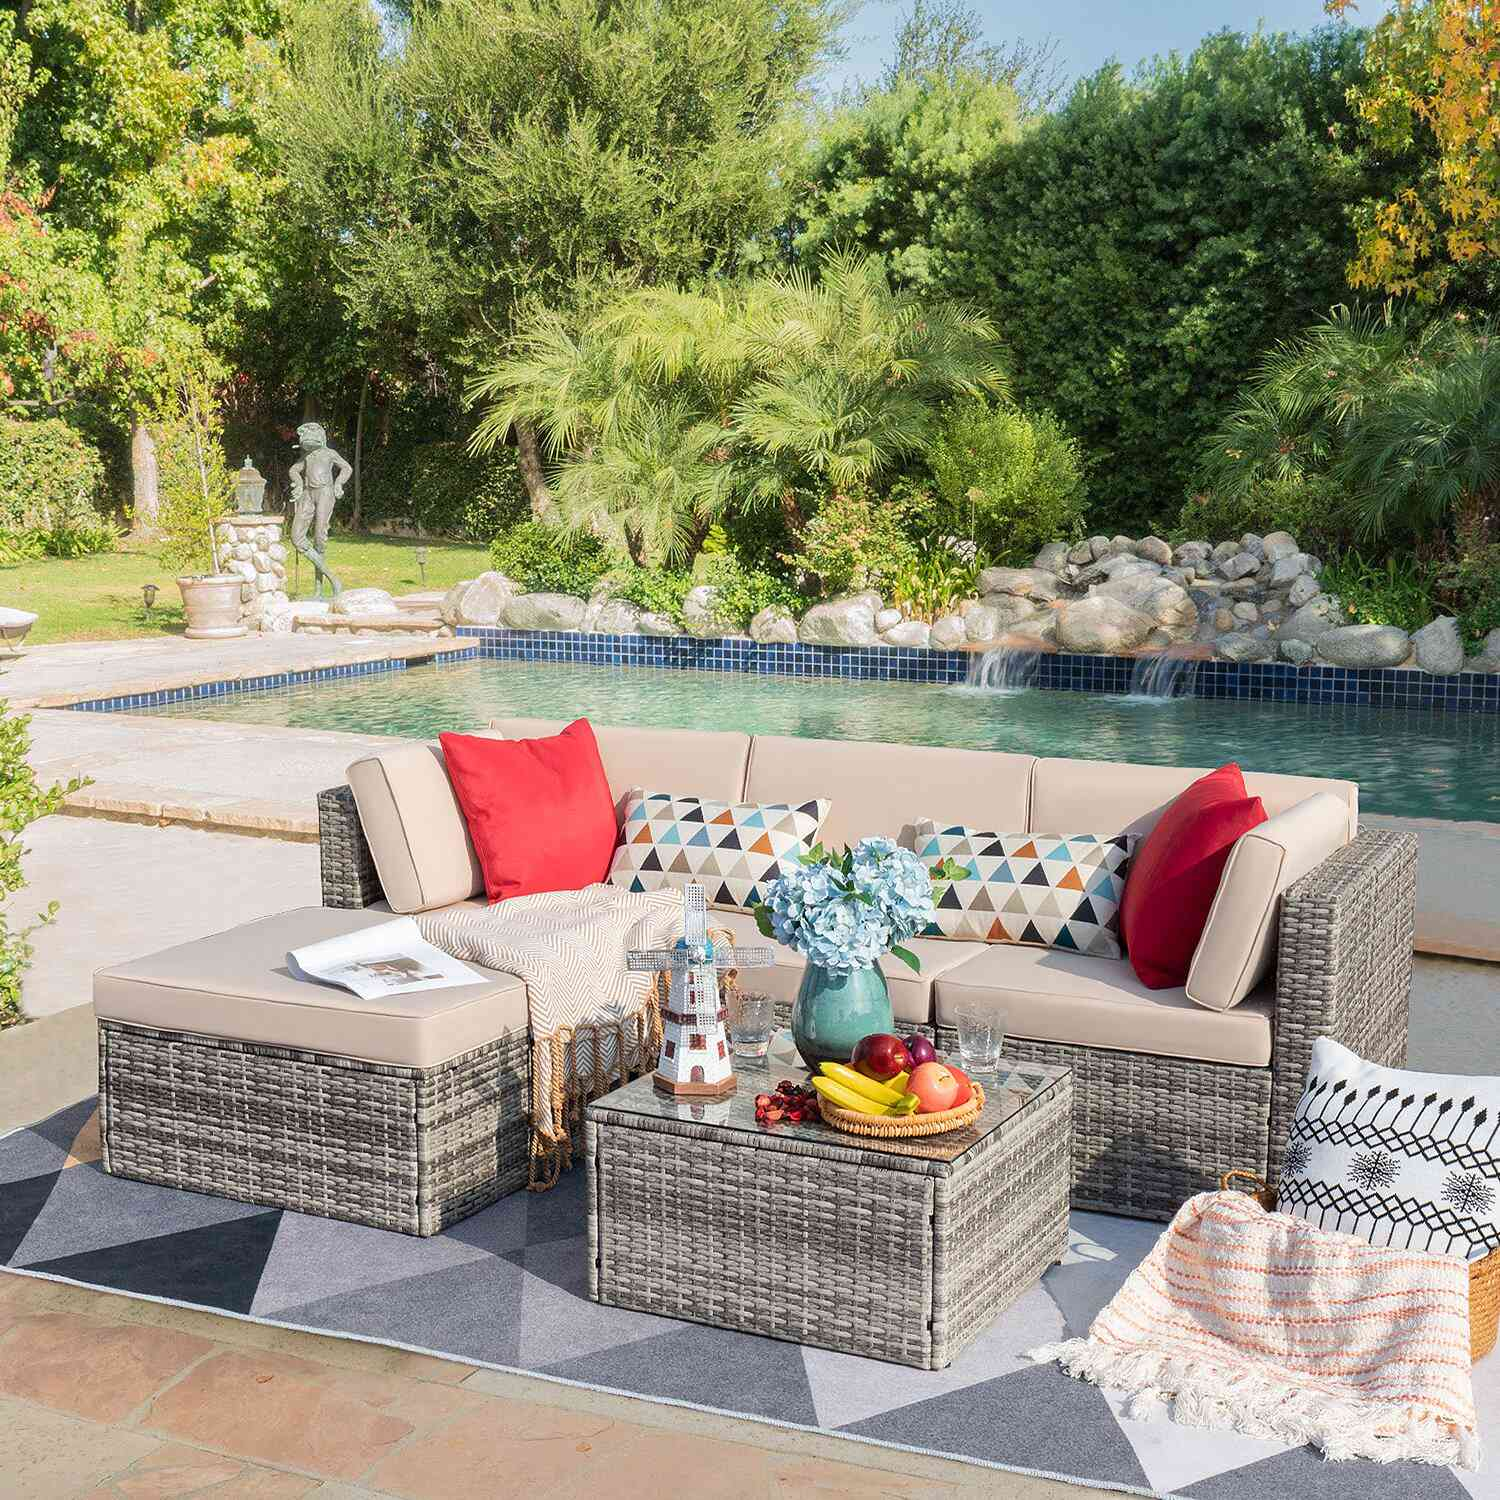 Red Agaran 5 Piece Rattan Sectional Seating Group with Cushions See More by Latitude Run®